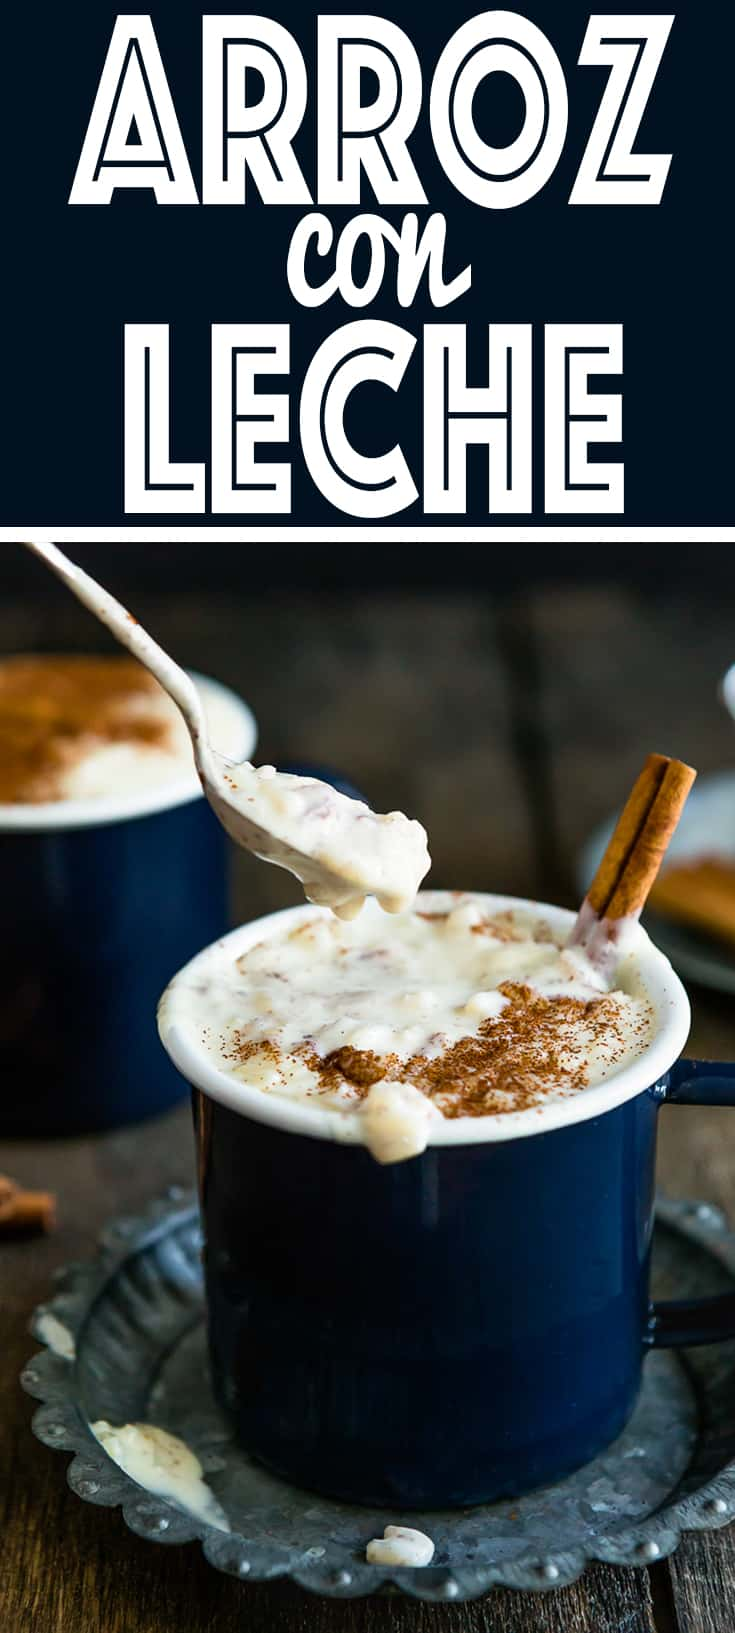 Arroz con Leche is the Spanish version of the well-known rice pudding. It's the ultimate comfort dessert. And almost without fail, this dessert will make you feel closer to home with every spoon, especially when served warm… so simple, but so perfect! https://mommyshomecooking.com